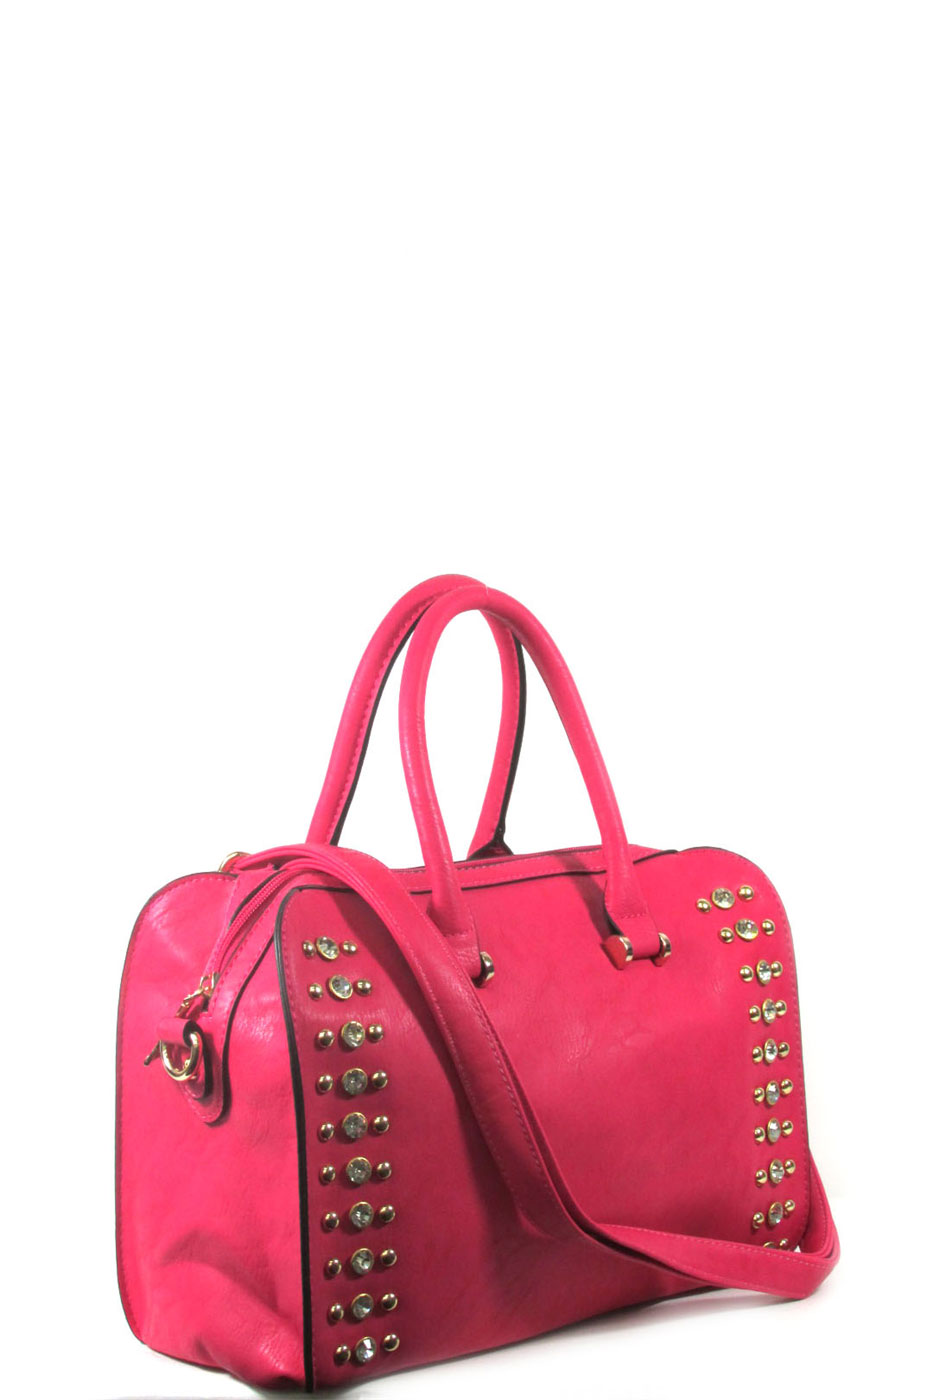 rhinestone satchel bag - orangeshine.com